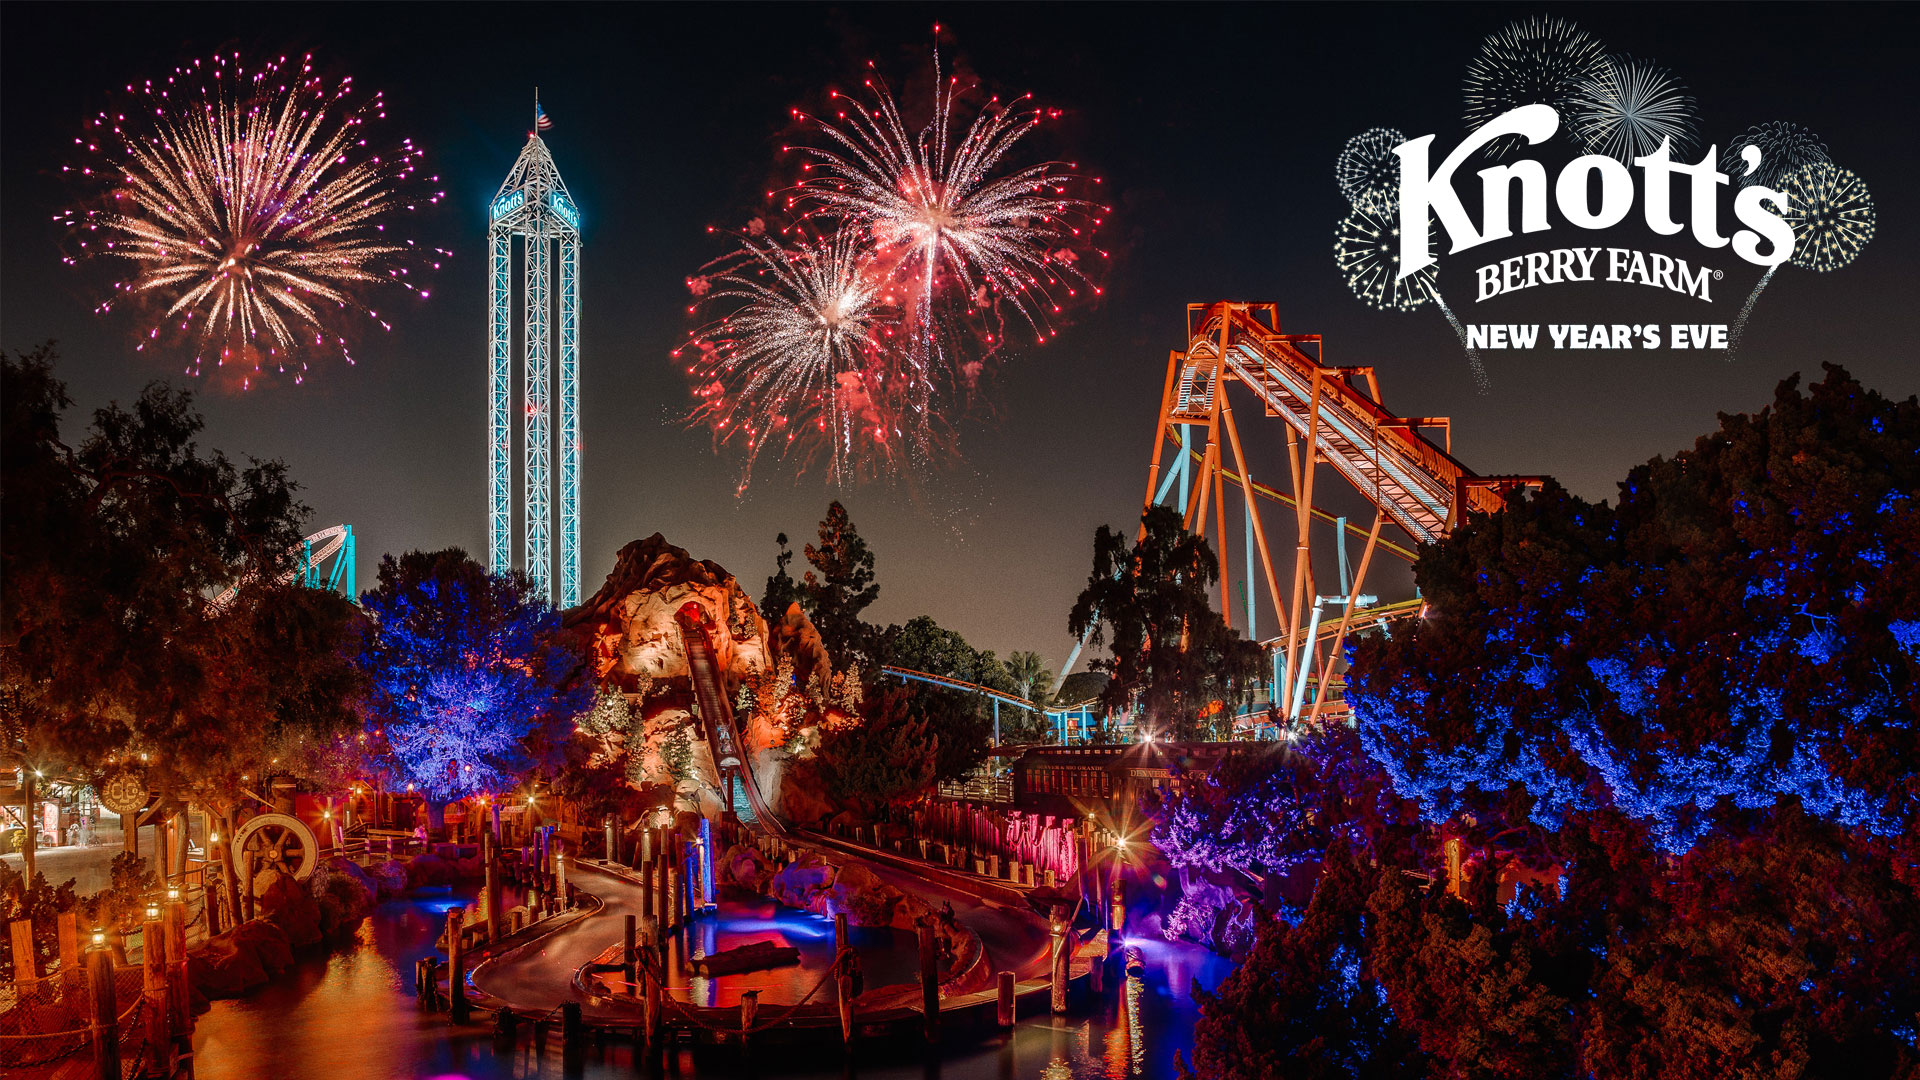 Knotts Berry Farm Christmas 2020 Dates 2019 2020 New Years Eve at Knott's Berry Farm   CP Food Blog